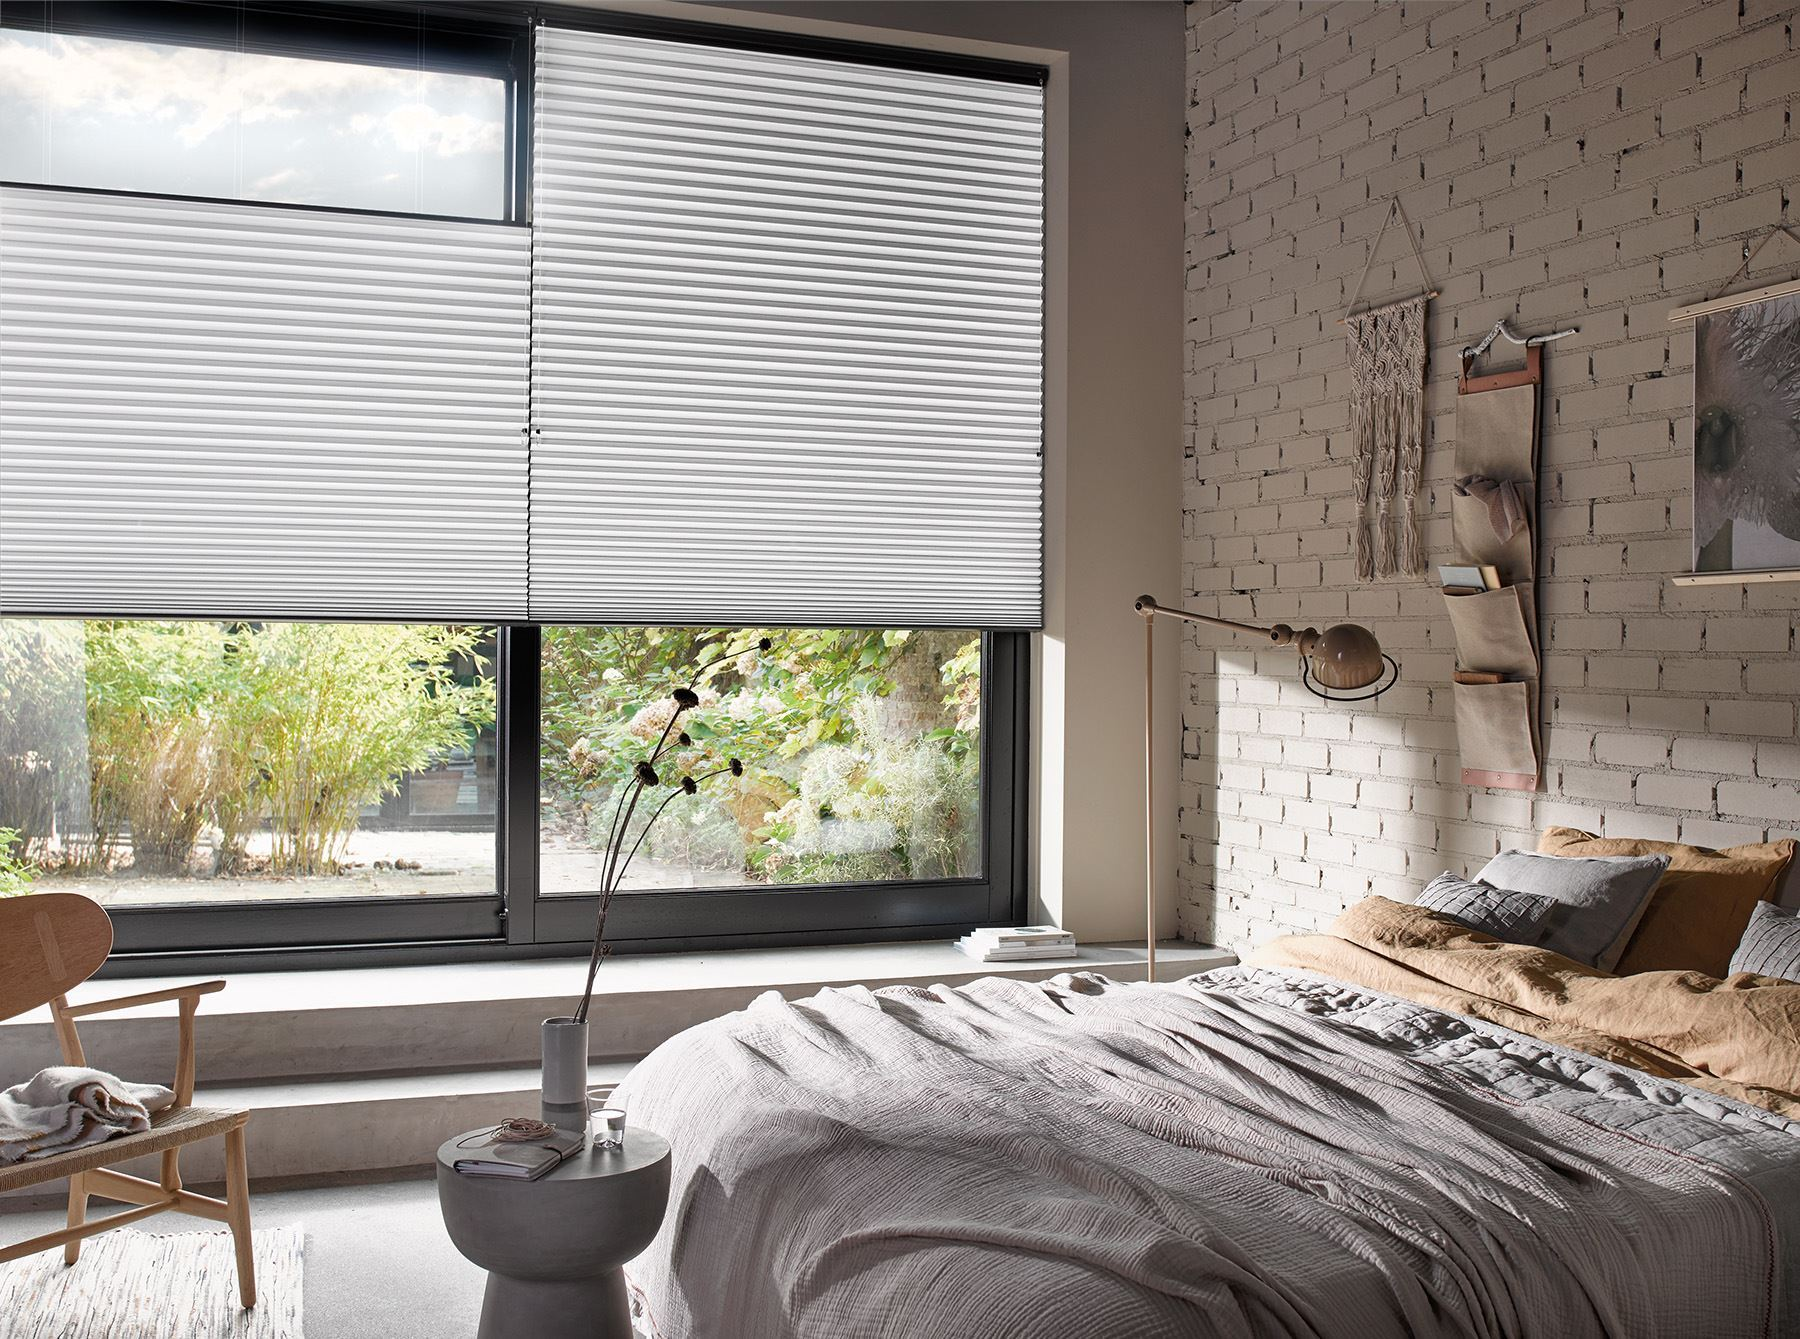 Afbeelding van Luxaflex® Duette® Shades 25 mm Top Down Bottom Up & Ingespannen met Koordrem